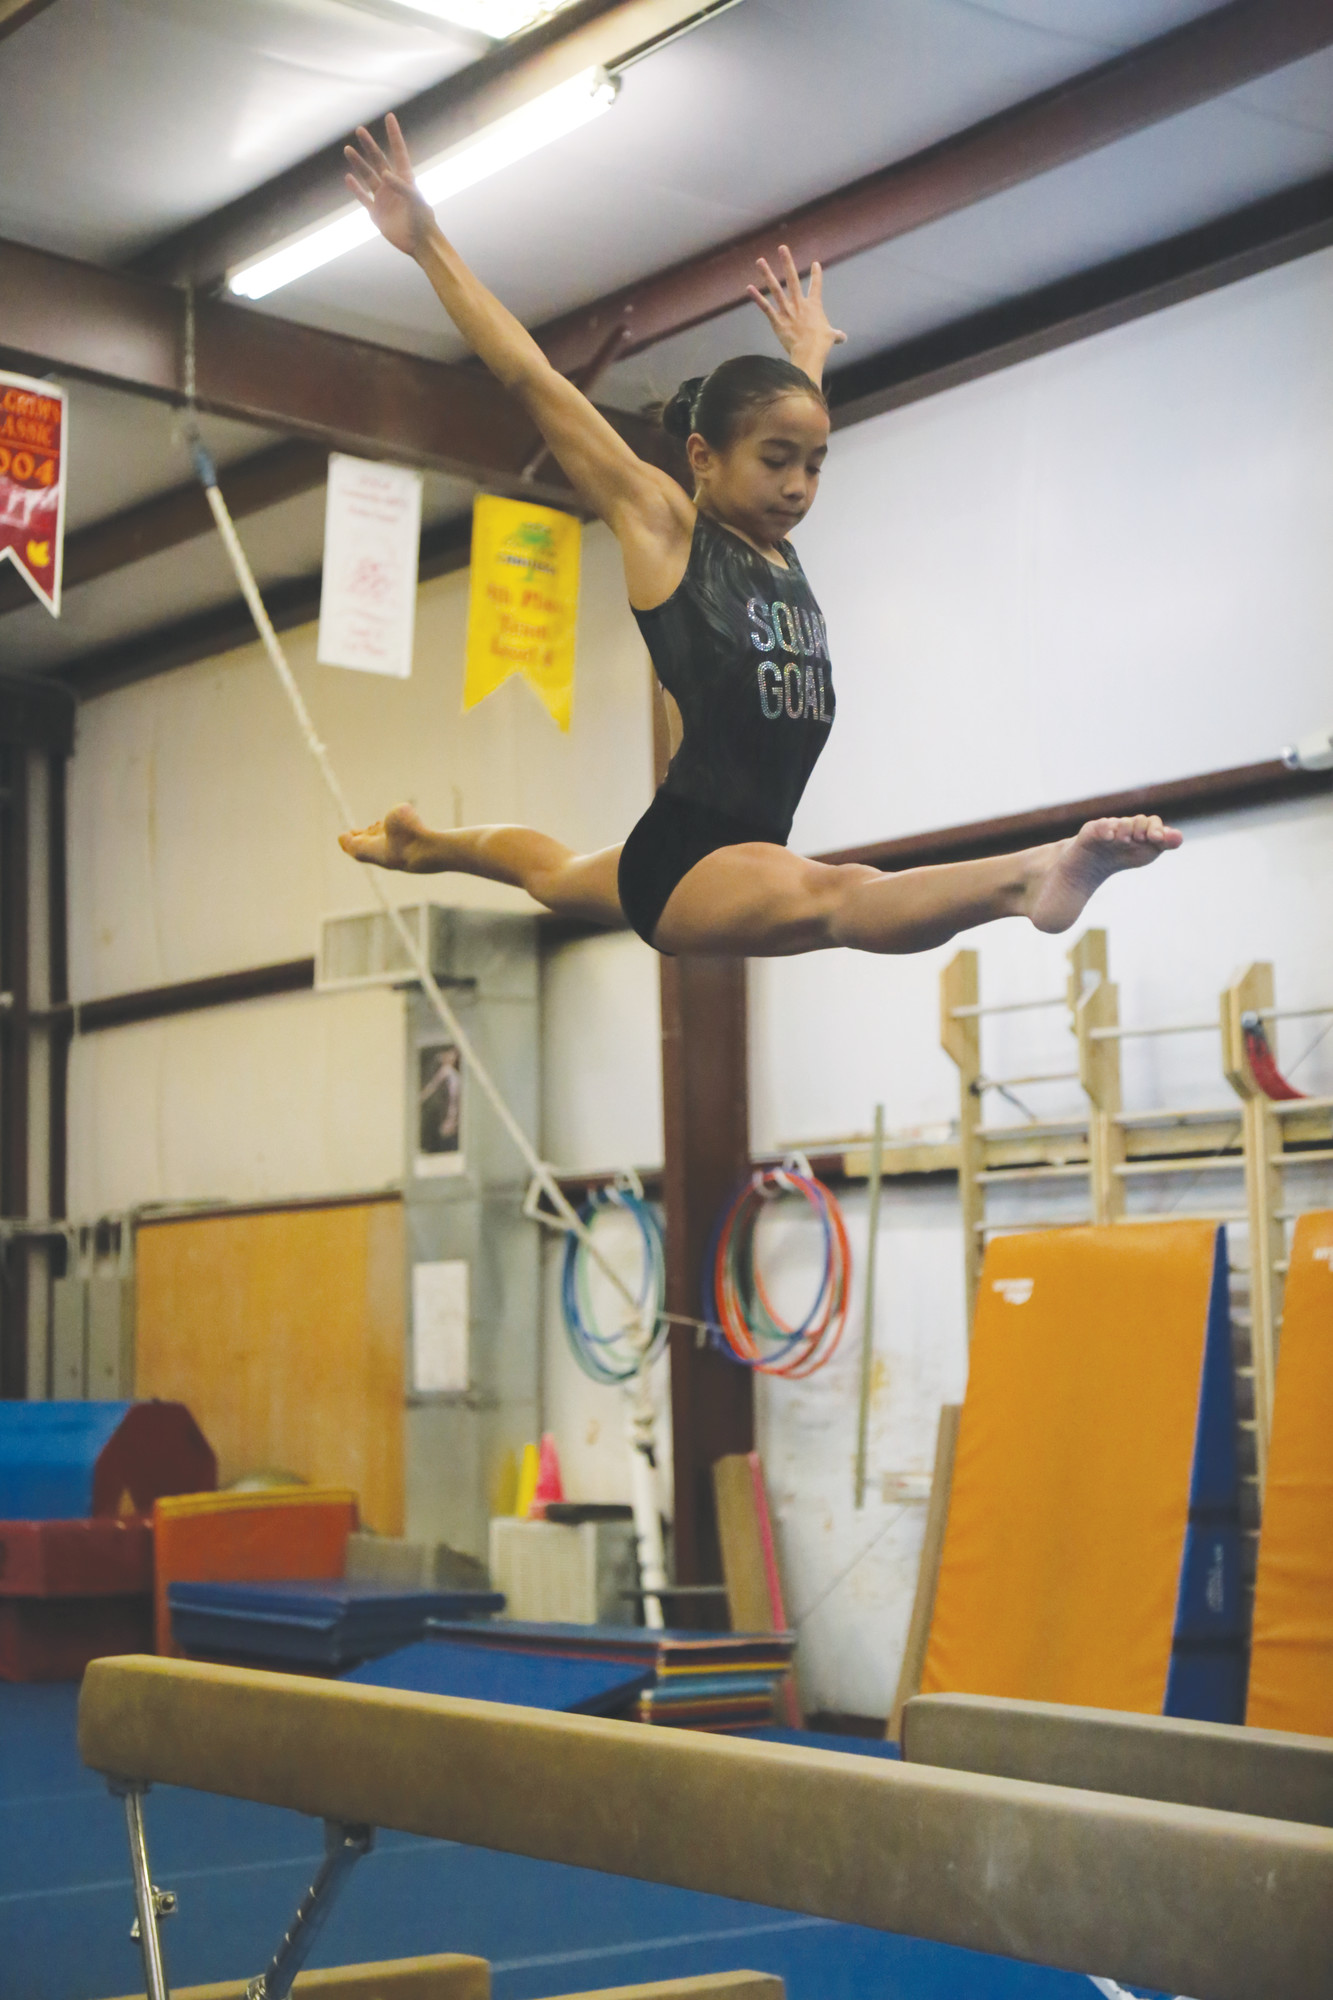 Mia Gabriel flies high above the beam during a recent practice session at Miss Libby's School of Dance and Gymnastics. Gabriel will compete in the Level 6 regional championships next weekend at the Classic Center in Athens, Georgia.